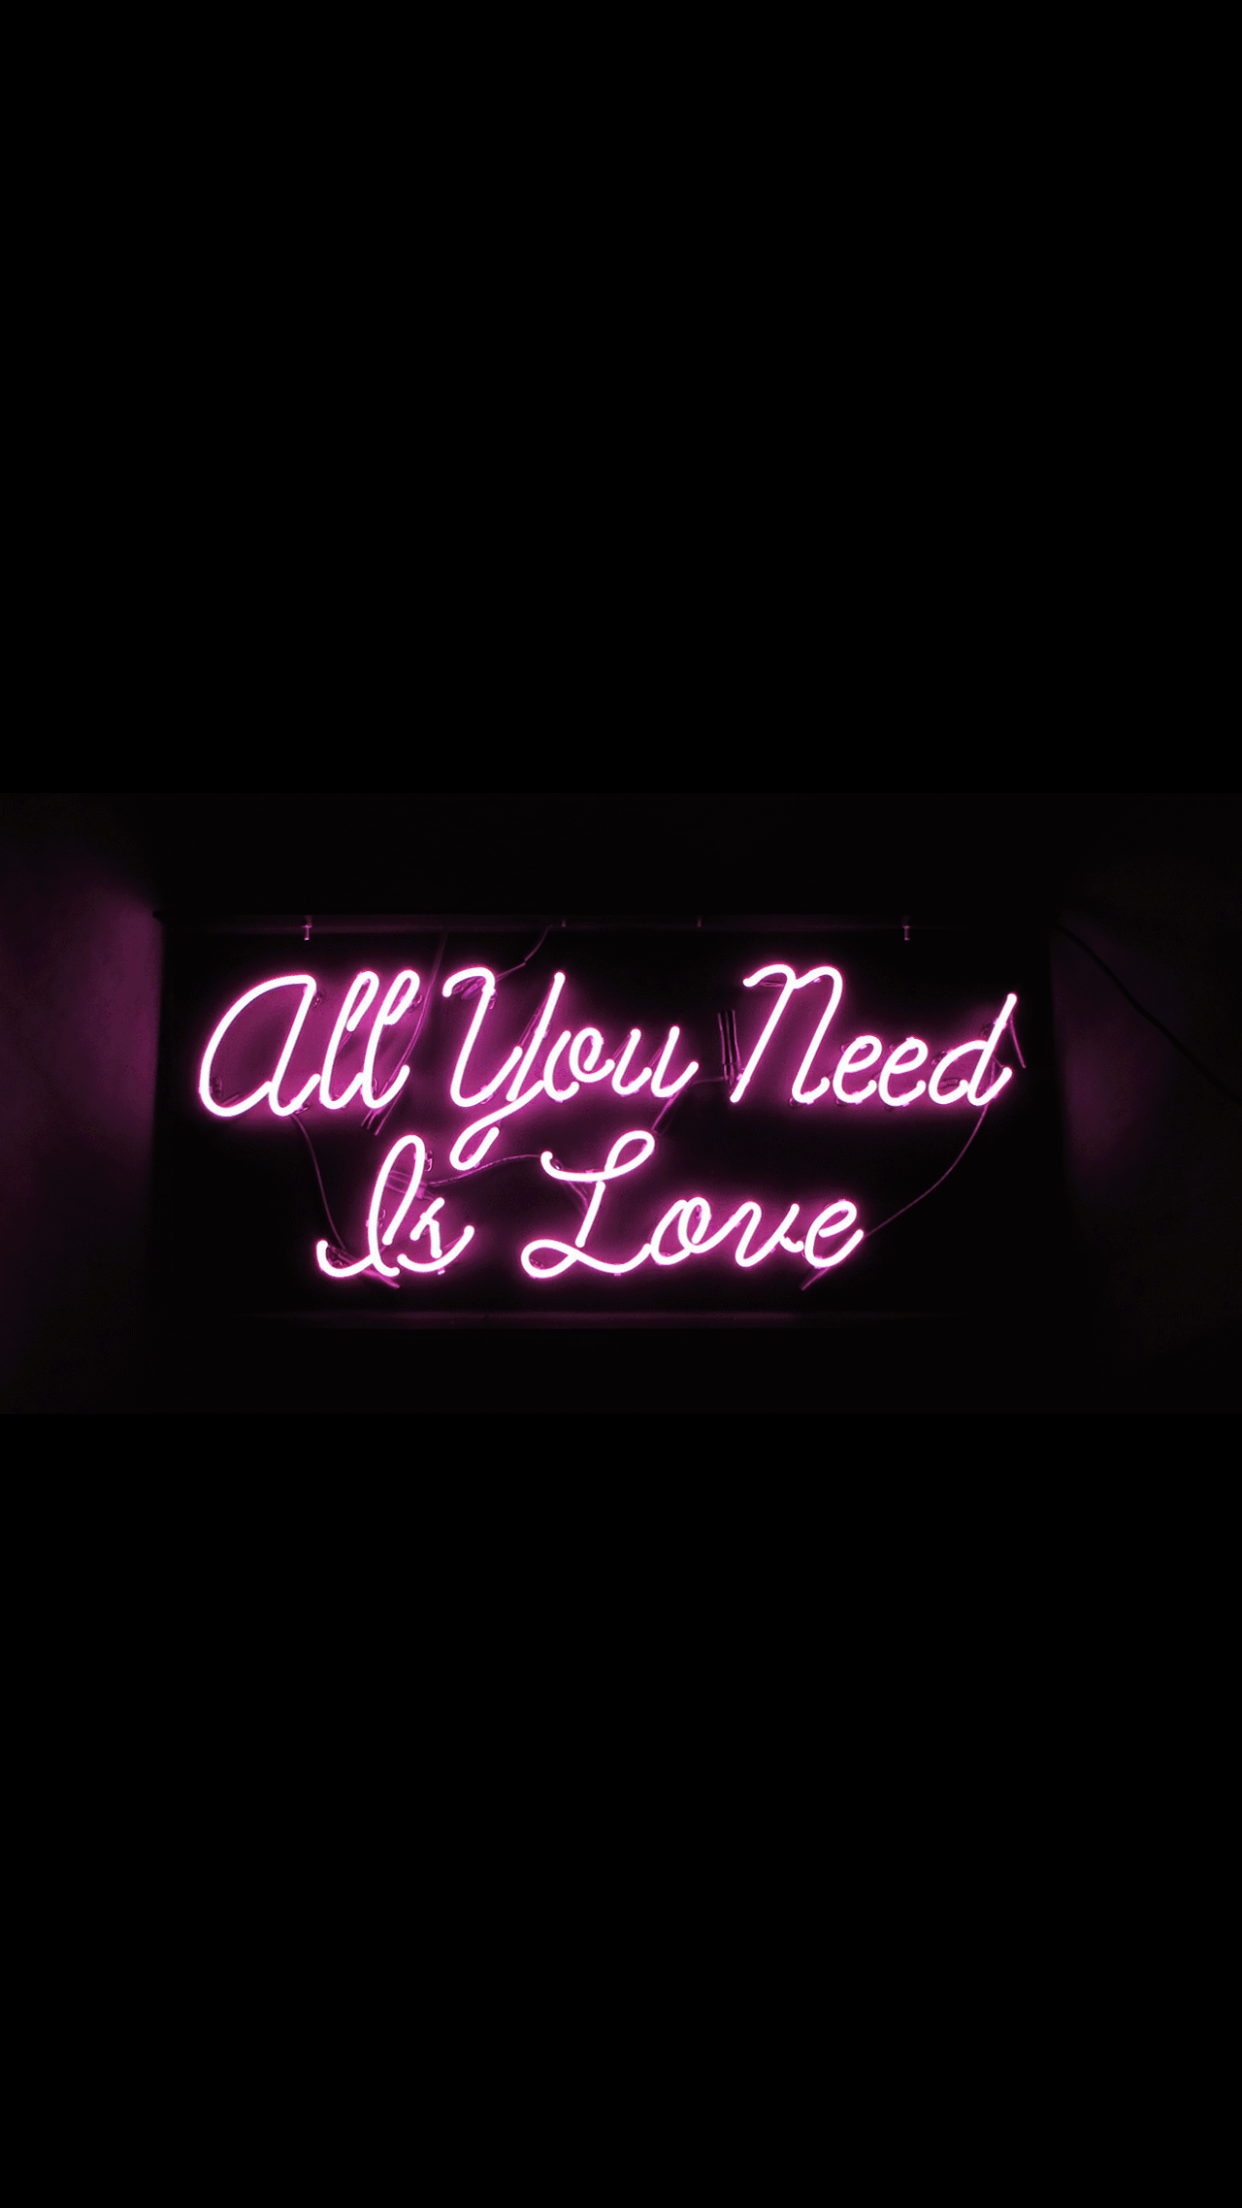 ⭐Explore more Wallpapers Neon signs, Neon wallpaper